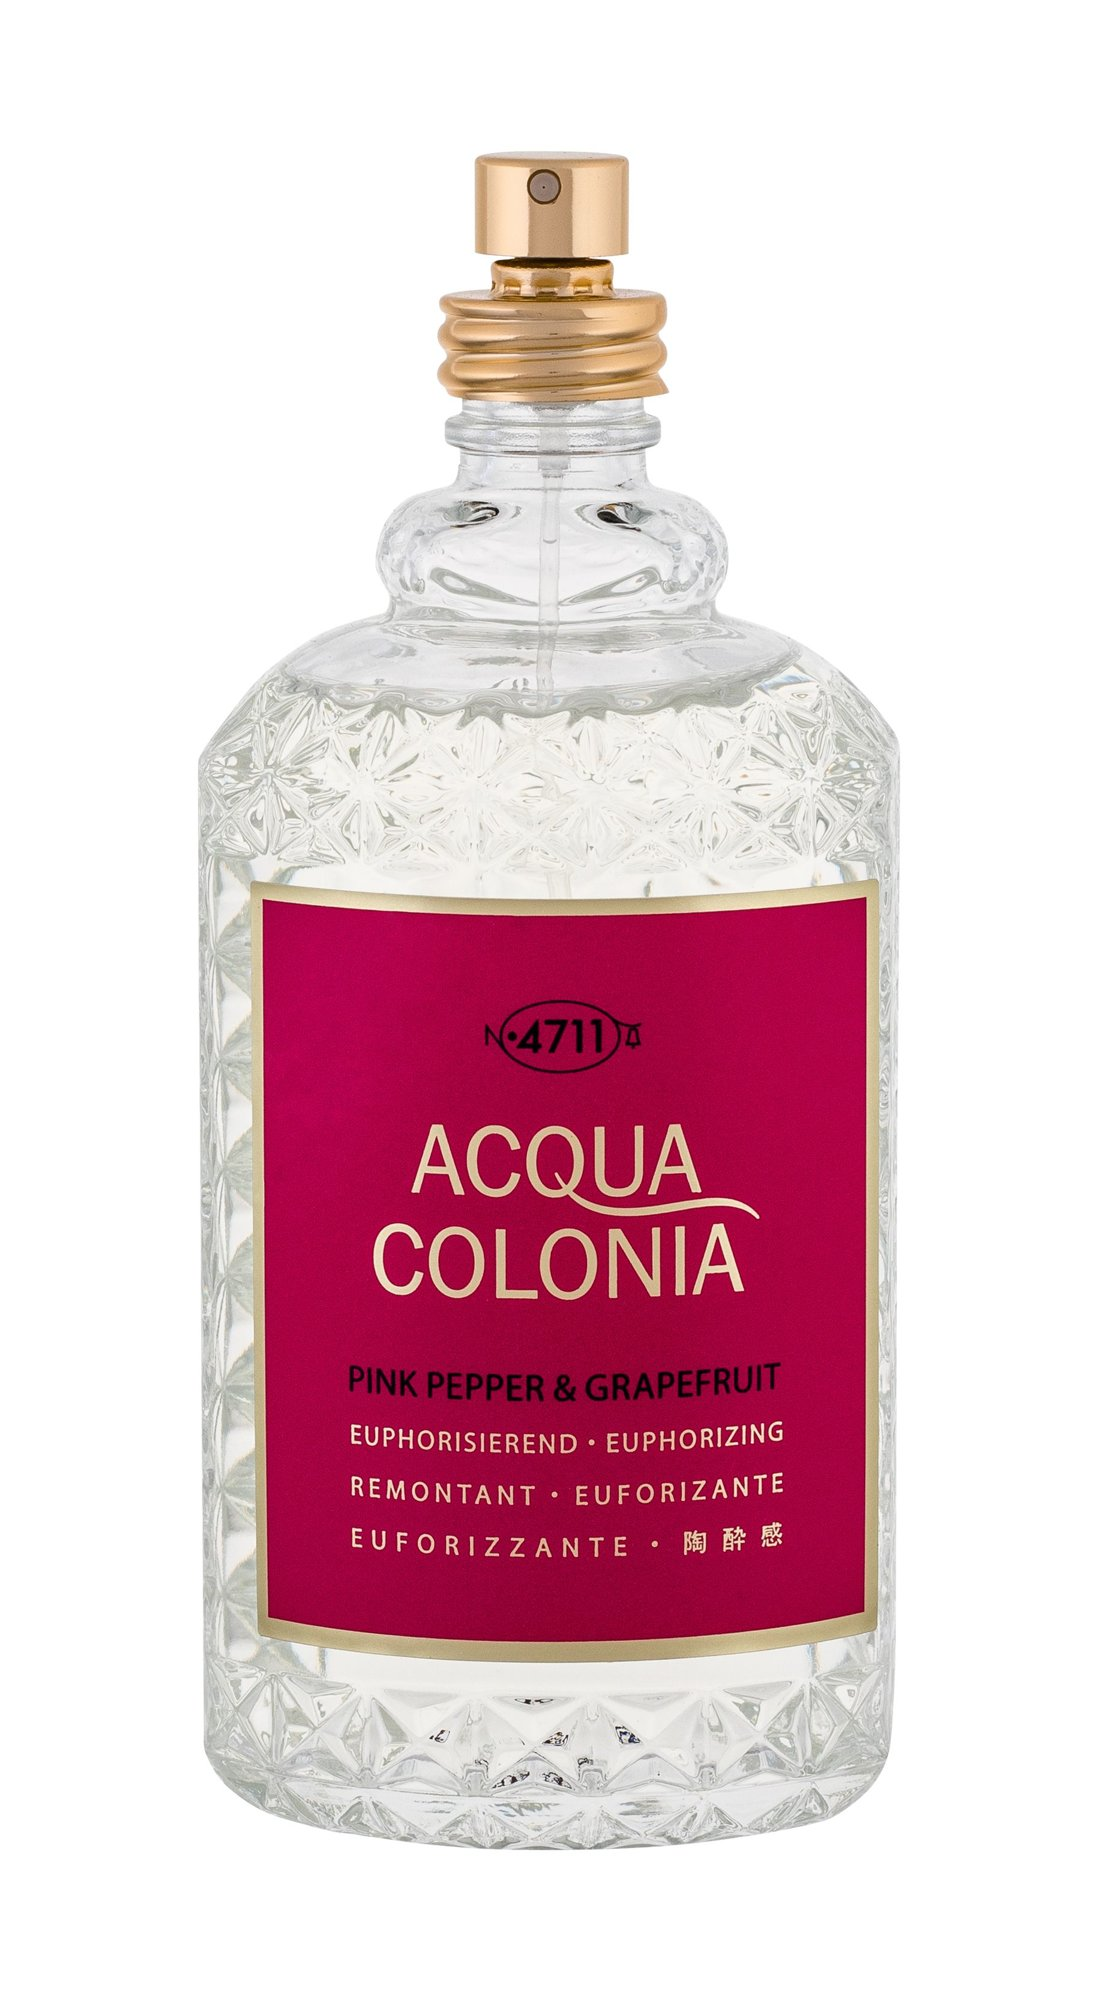 4711 Acqua Colonia Pink Pepper & Grapefruit Cologne 170ml